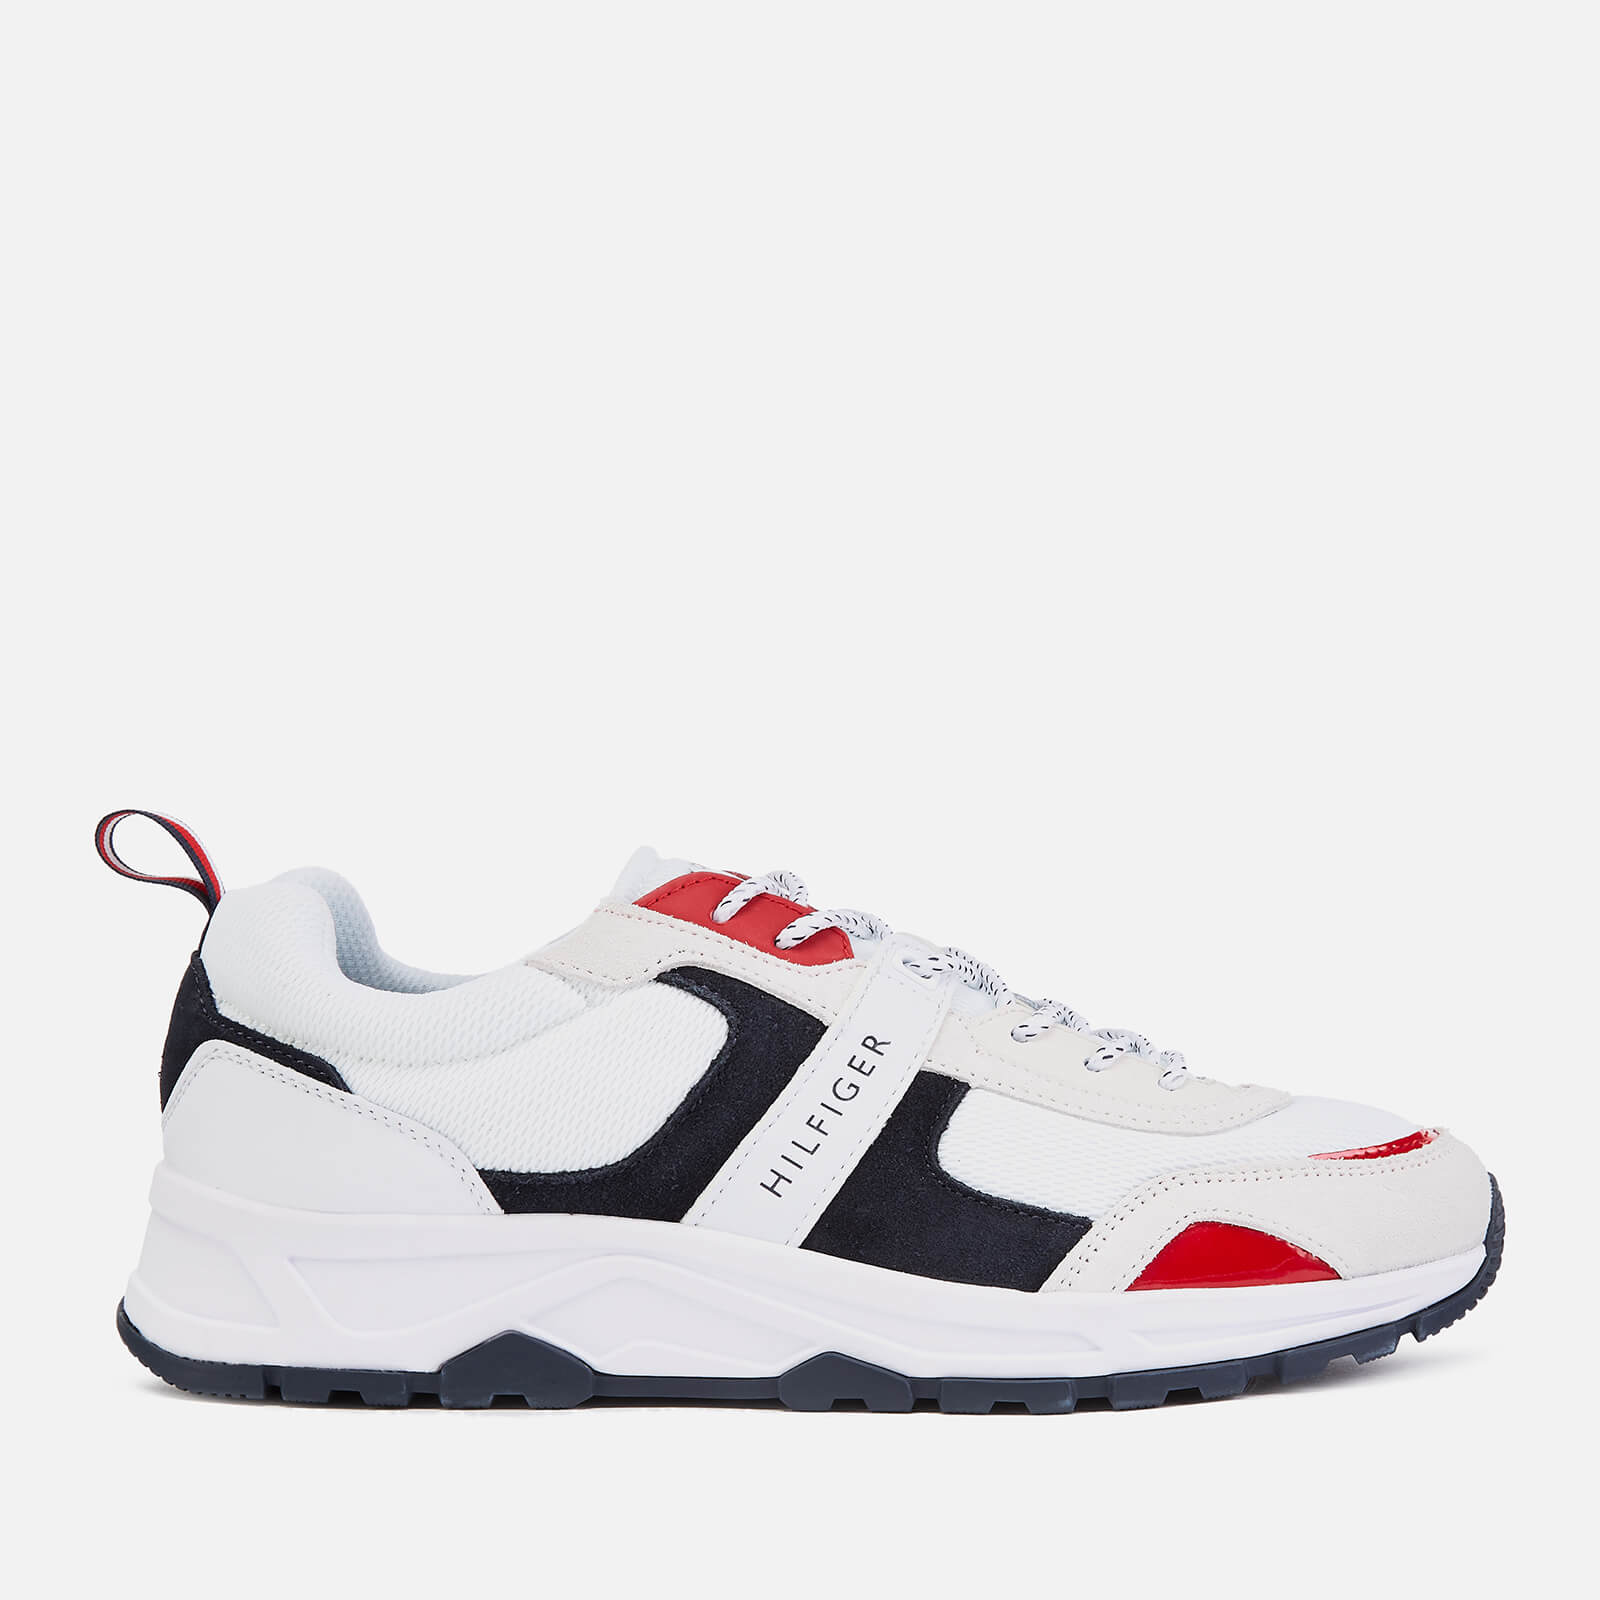 Chunky sneaker | Tommy Hilfiger | ACT LIKE A BOY in 2019